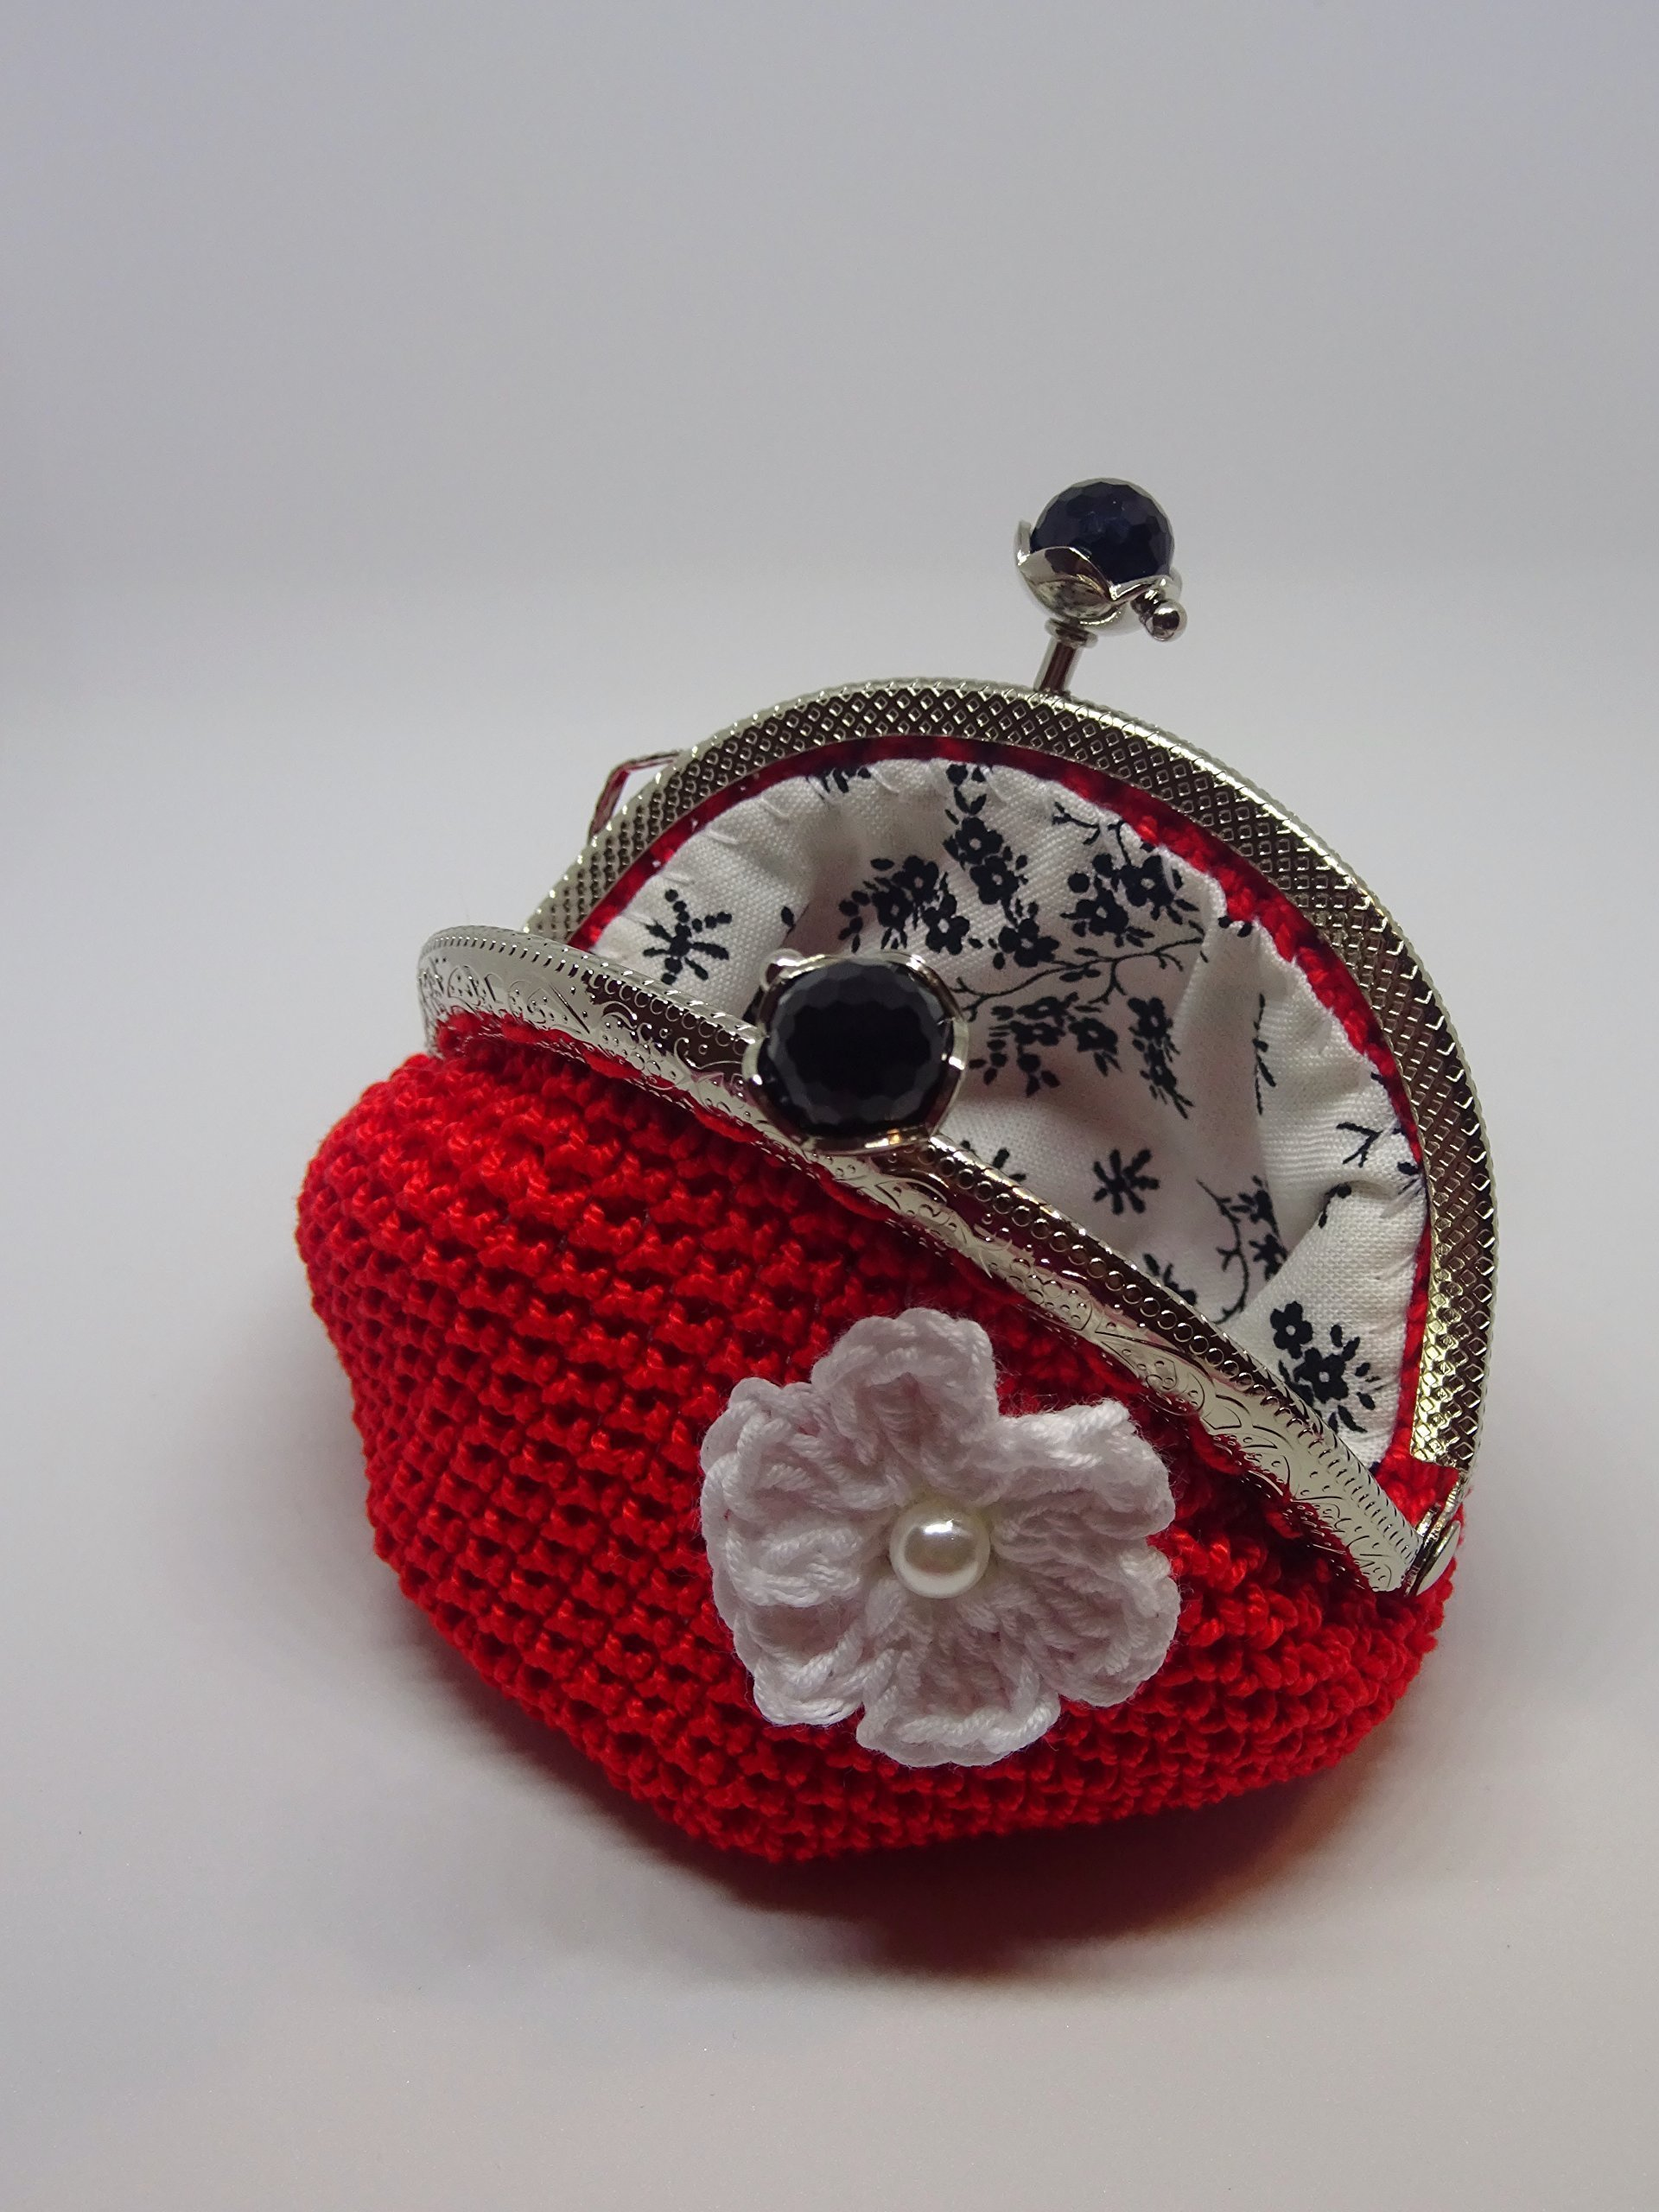 Crochet coin purse lined with fabric and little flower applique - 8,5 cm (3.35'')